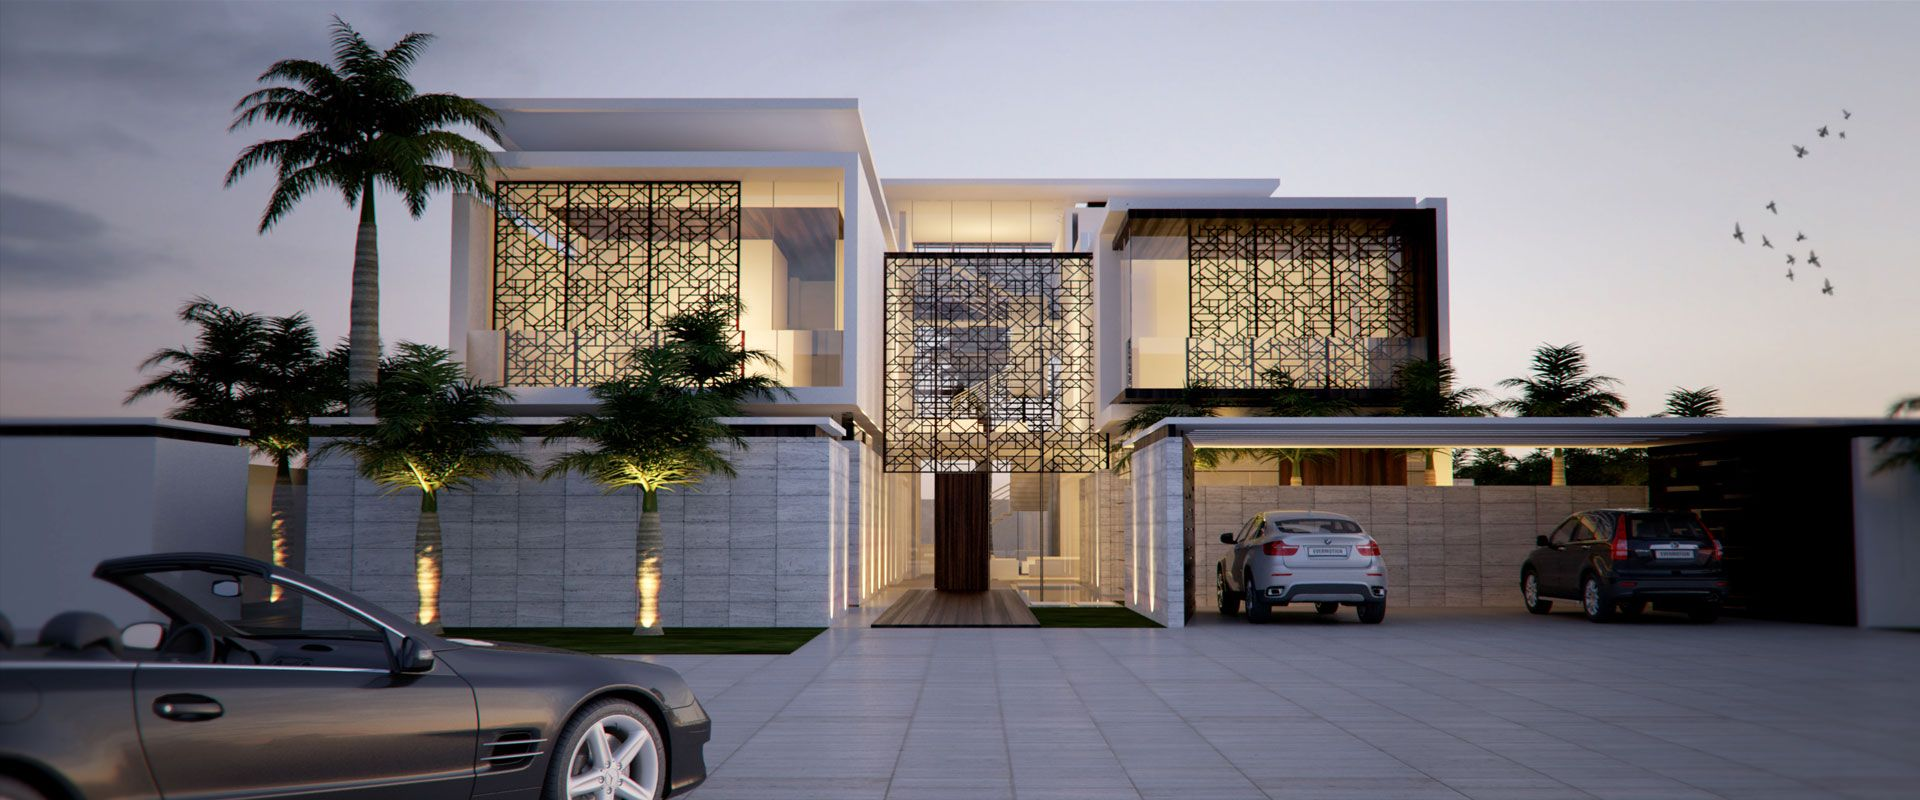 Dubai House Plans Designs